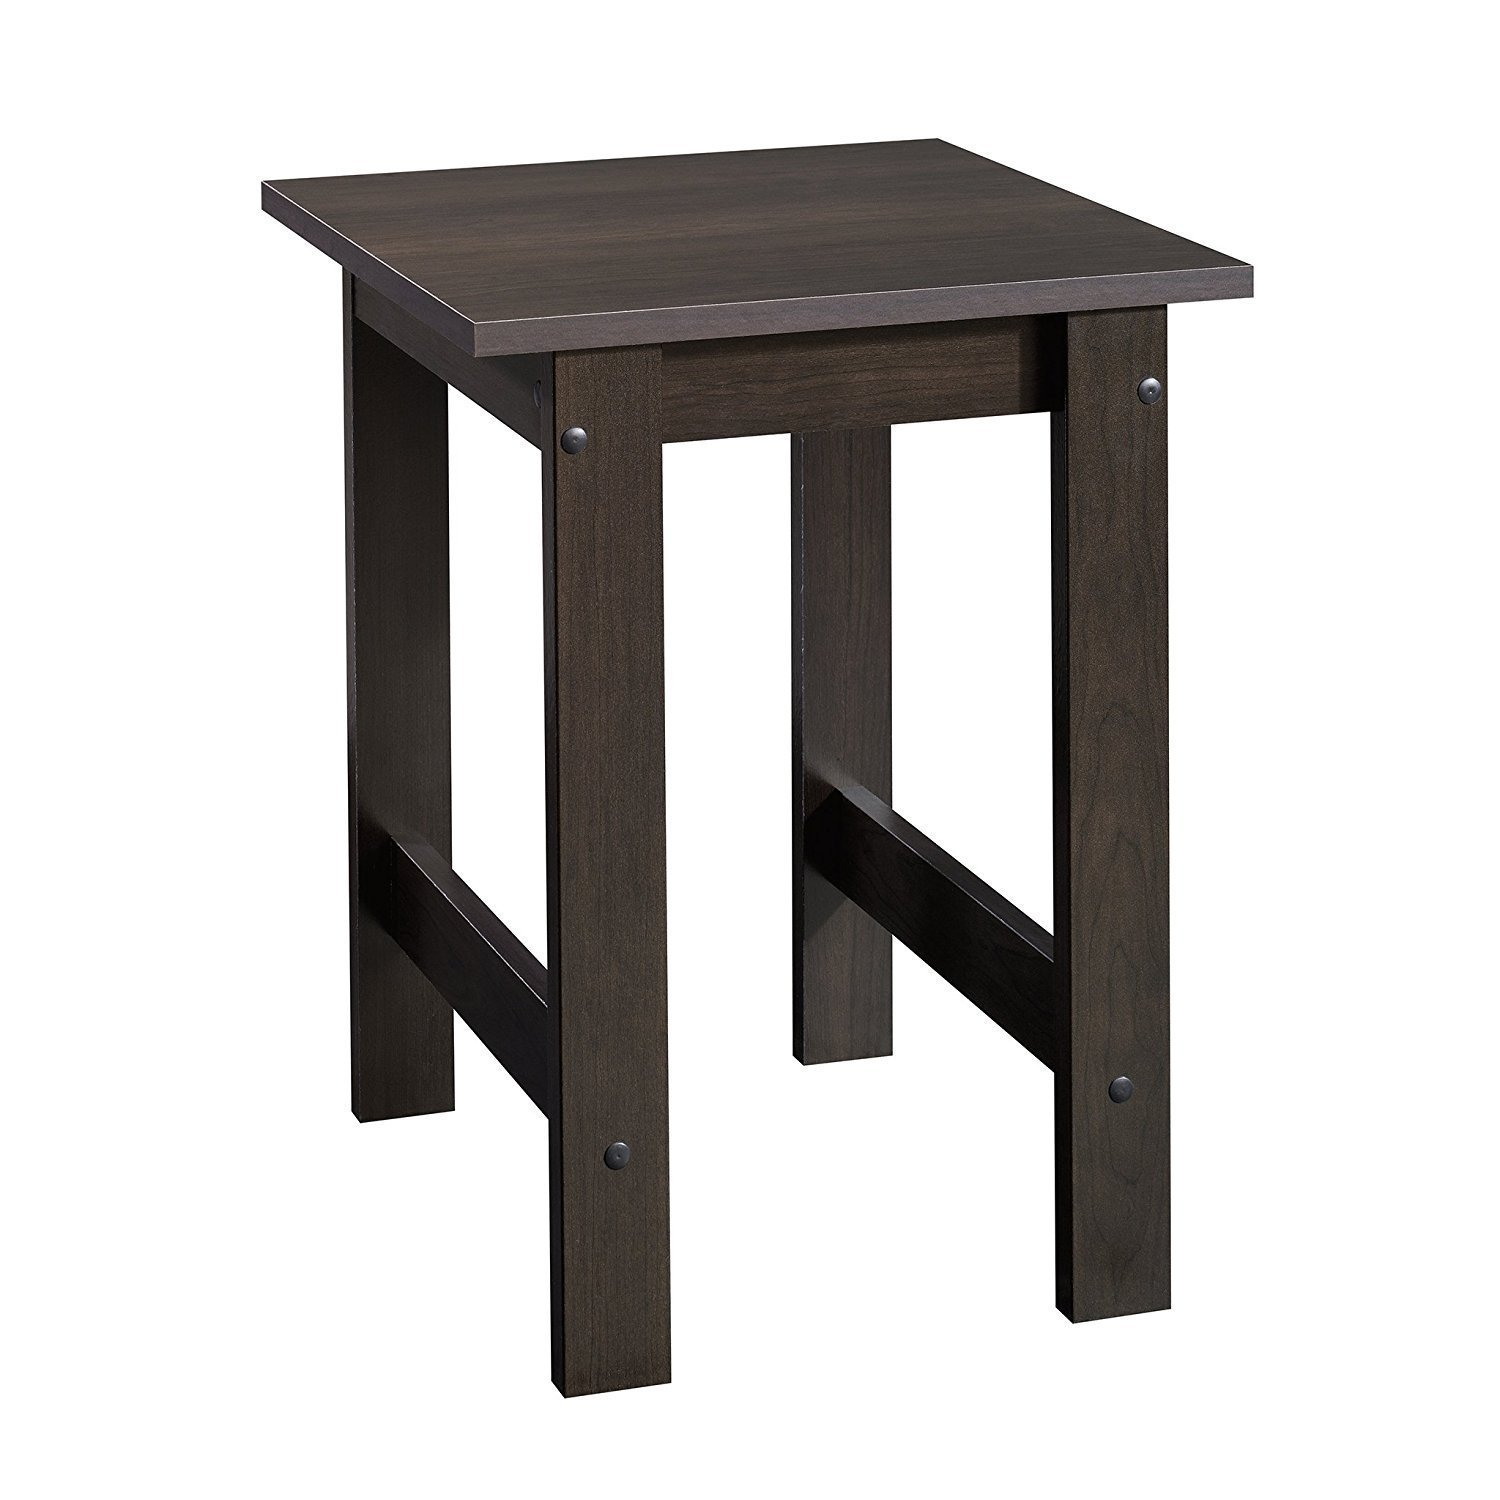 sauder beginnings end table kqoel furniture tables cinnamon cherry finish kitchen dining simple pallet projects stanley american modern collection home hardware patio narrow sofa